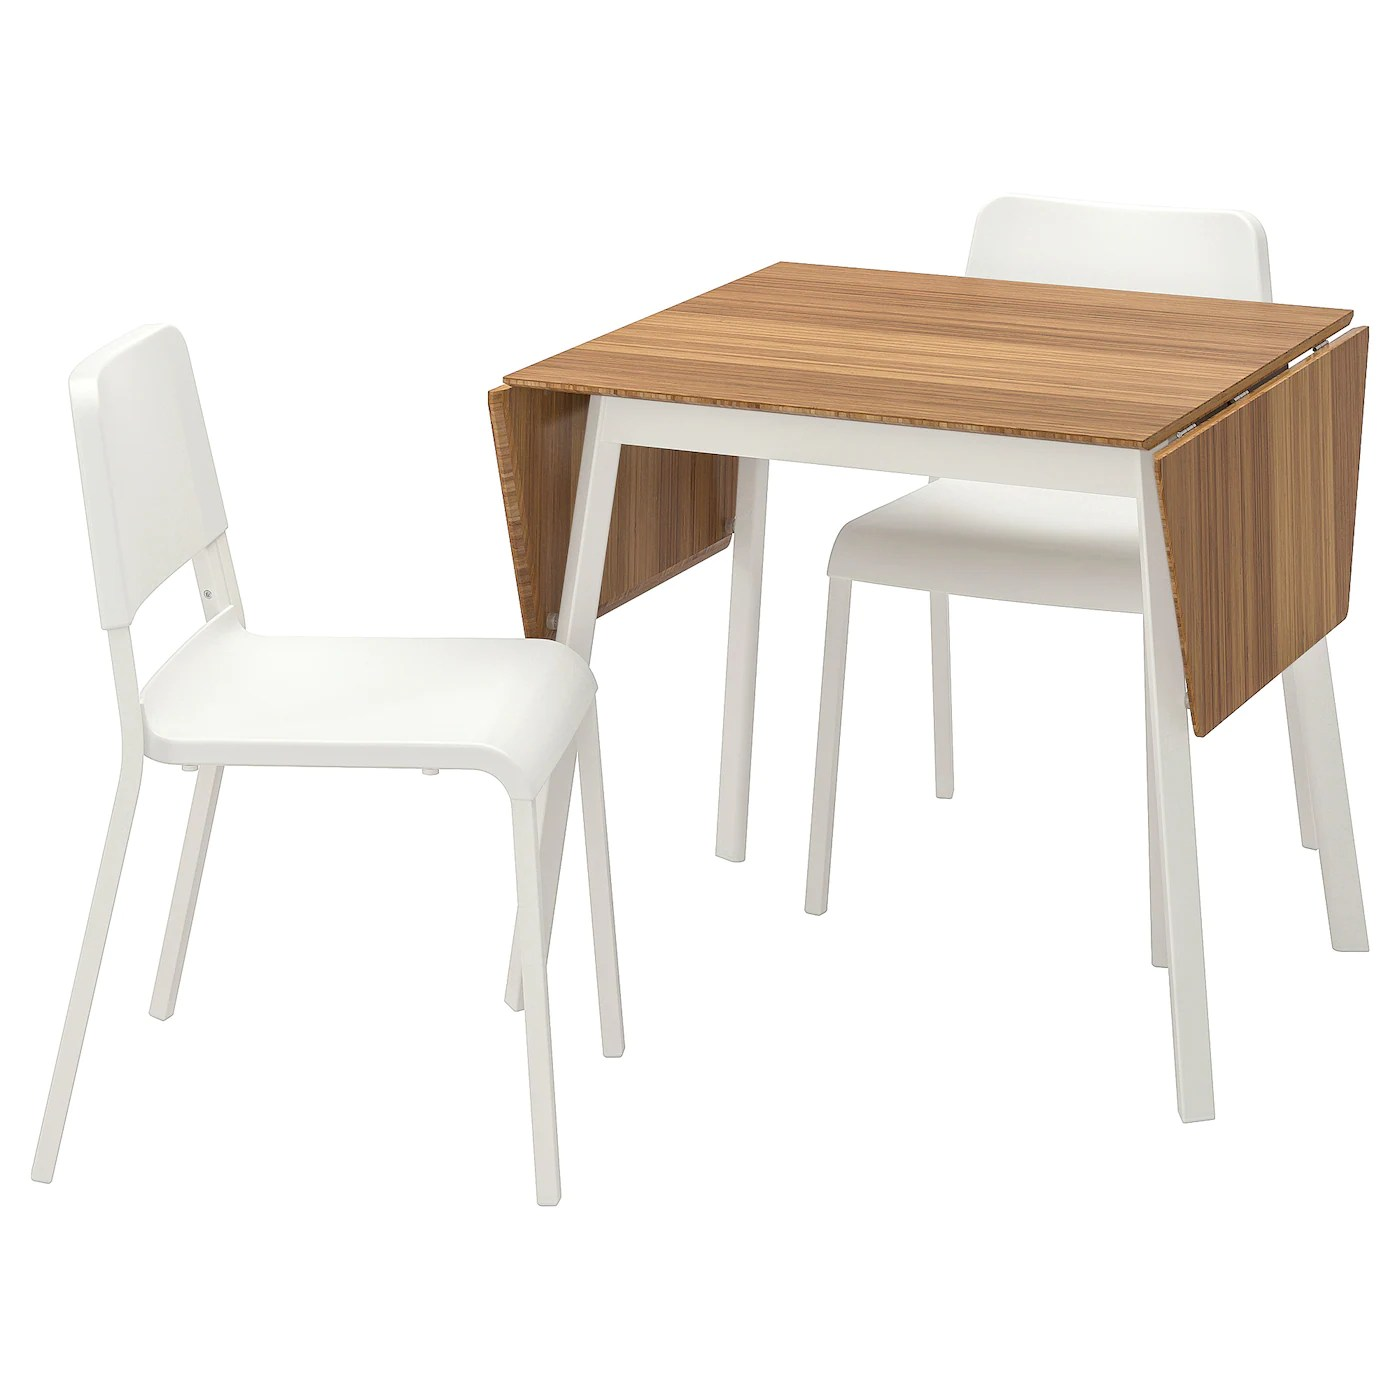 ikea ps 2012 teodores table et 2 chaises bambou blanc blanc